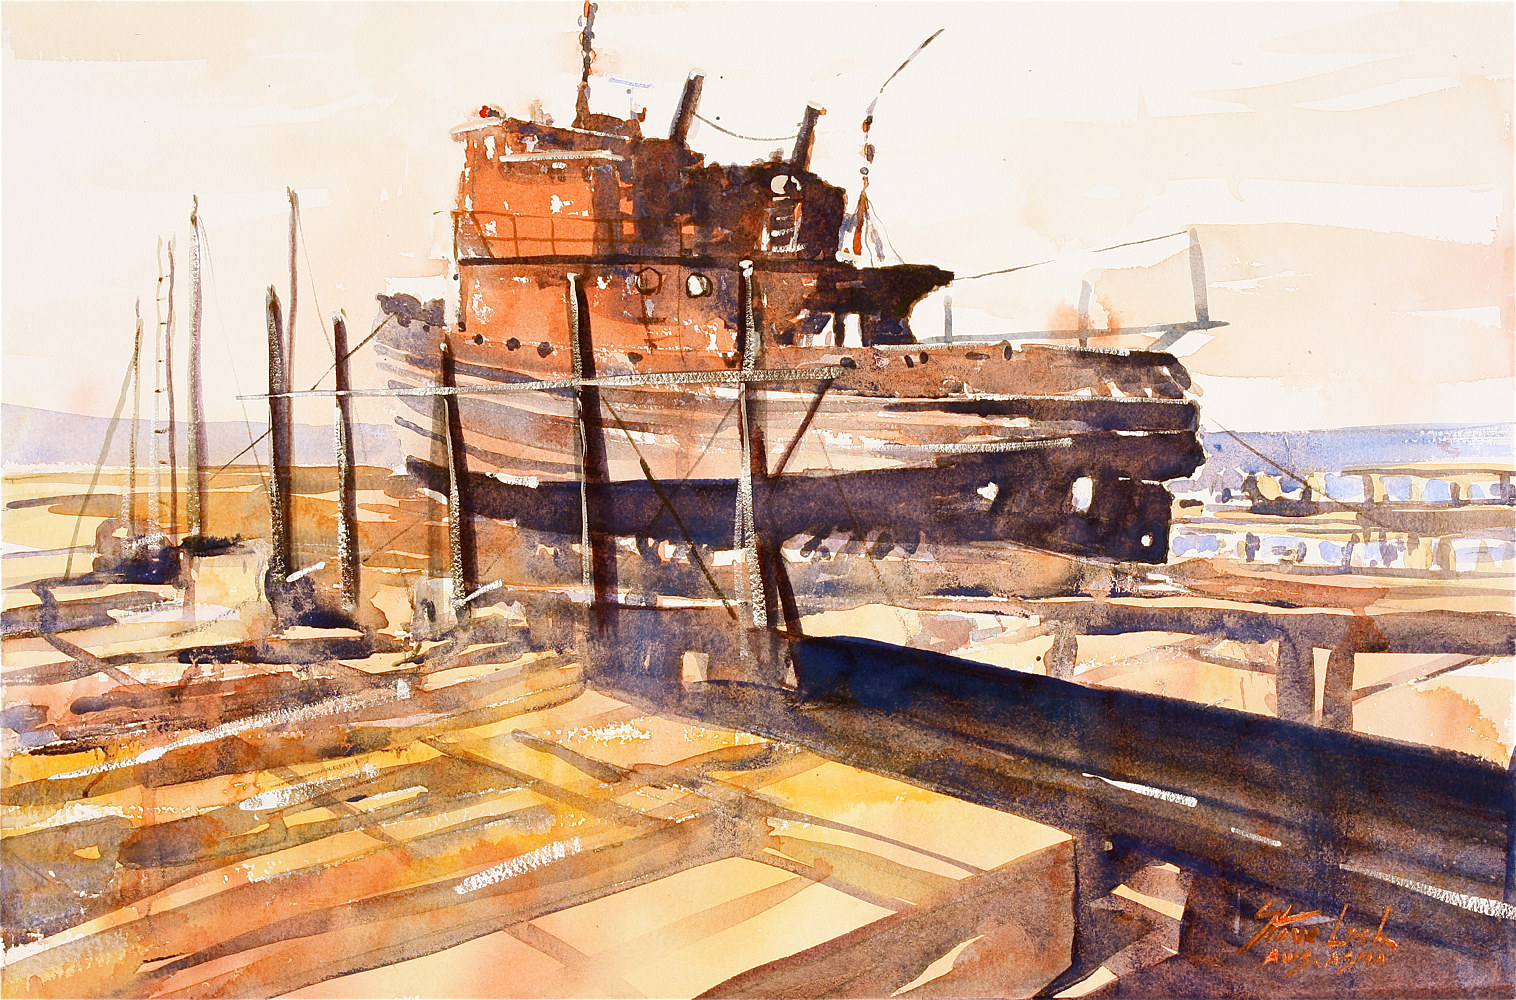 Watercolor Gloucester Marine Railway by Nella Lush